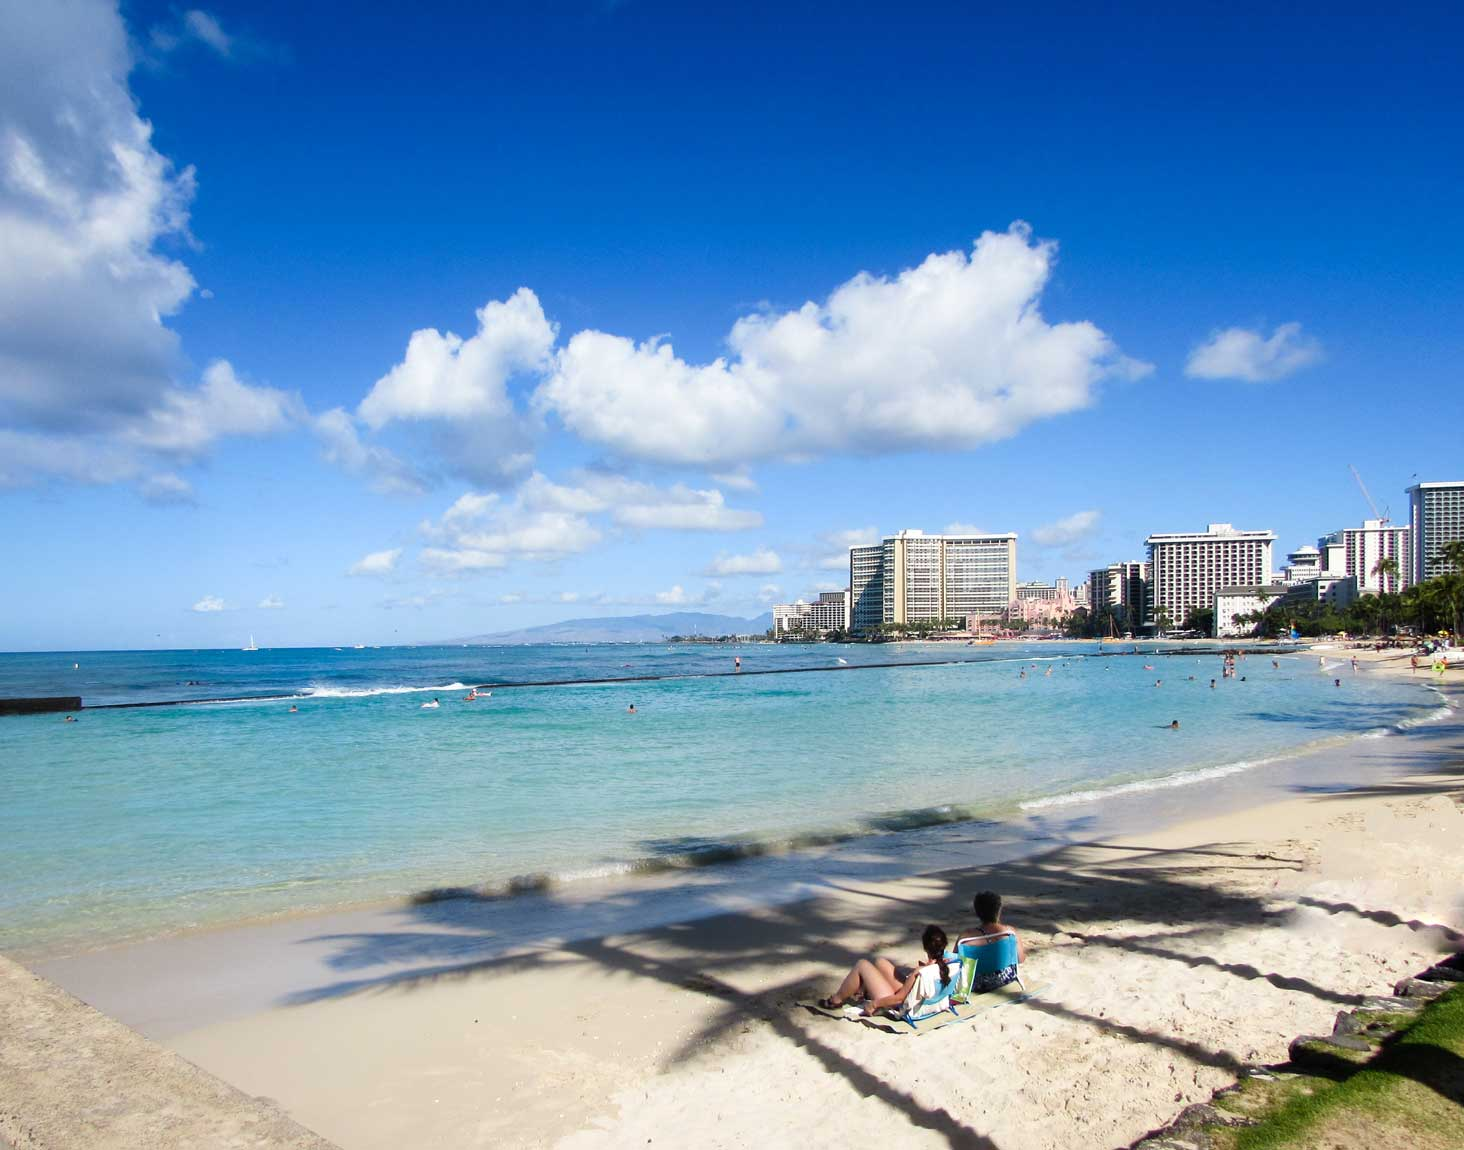 Best Beaches - Honolulu Travel Guide - 45 things to do in Honolulu - Christobel Travel